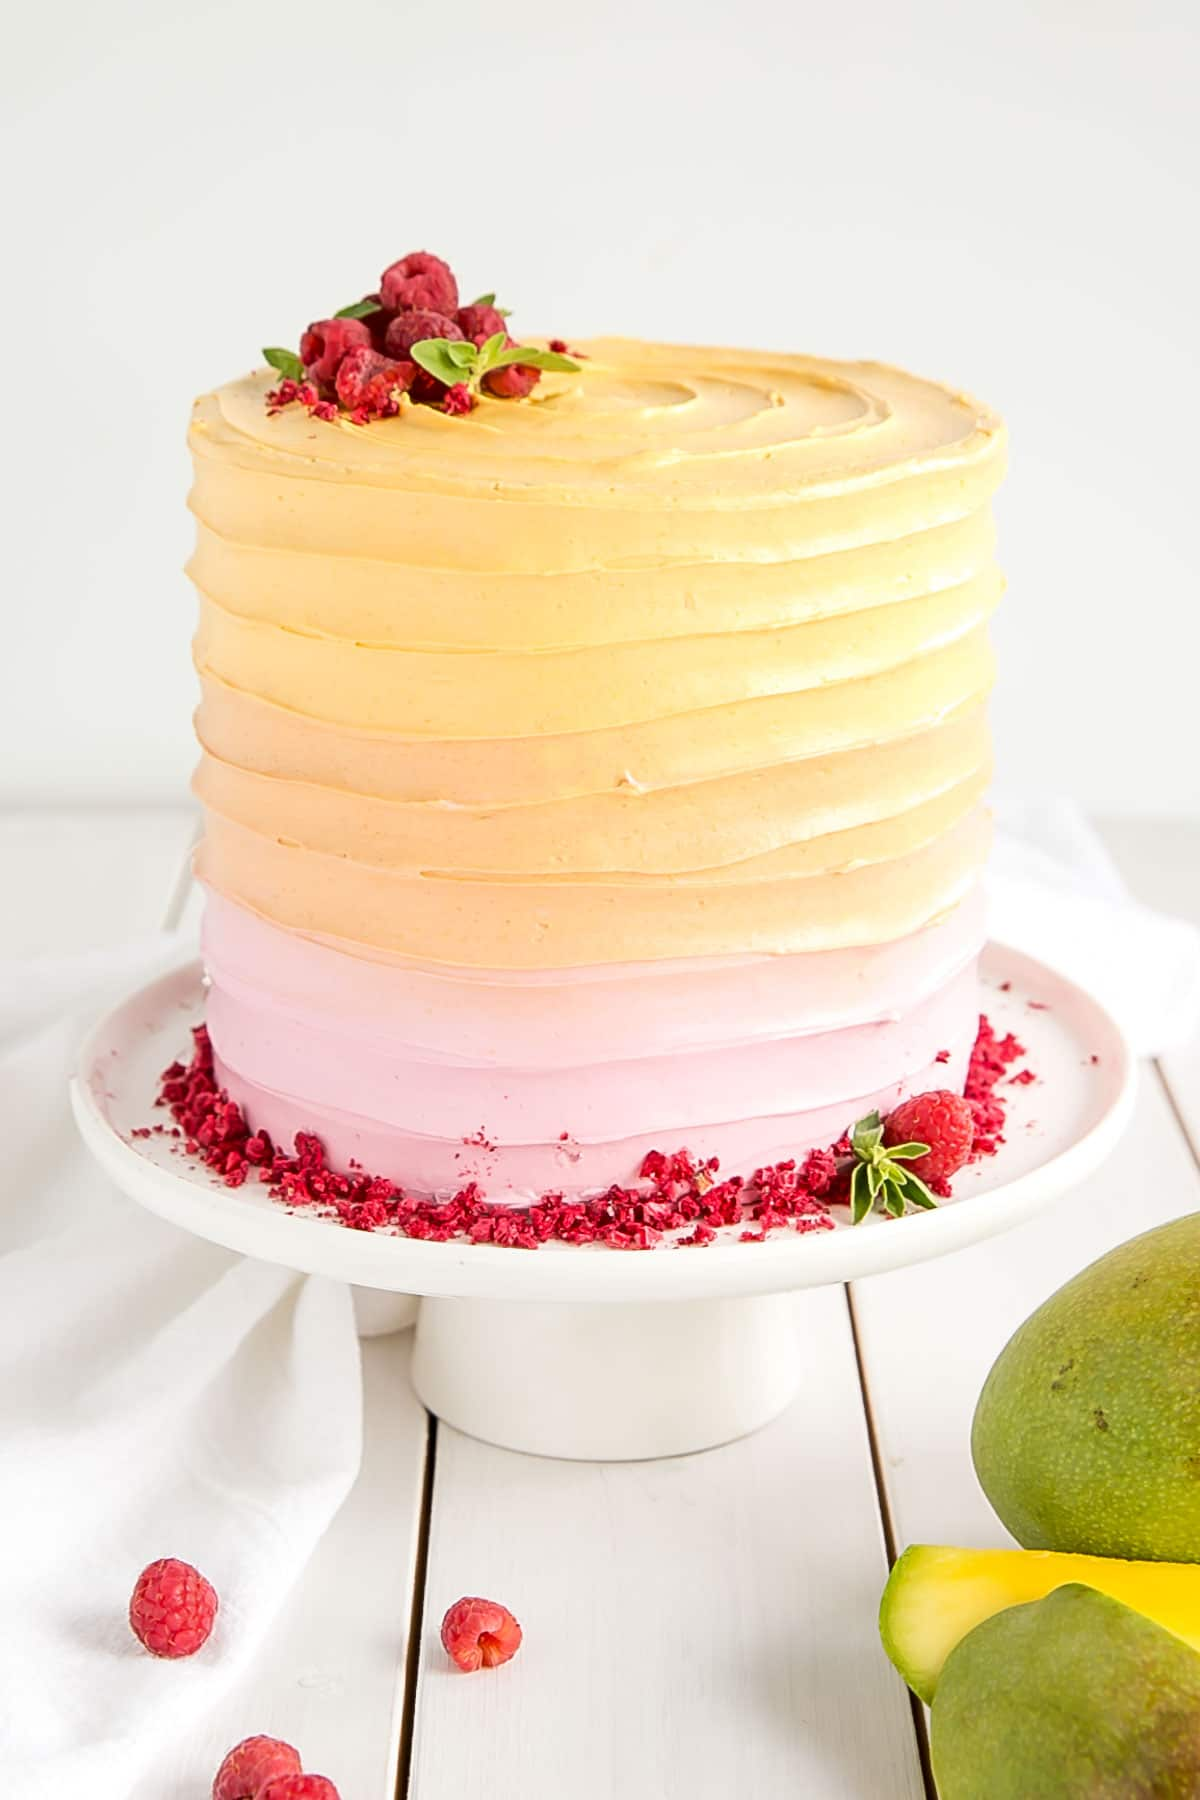 Raspberry Cake with Mango buttercream and freeze-dried raspberries